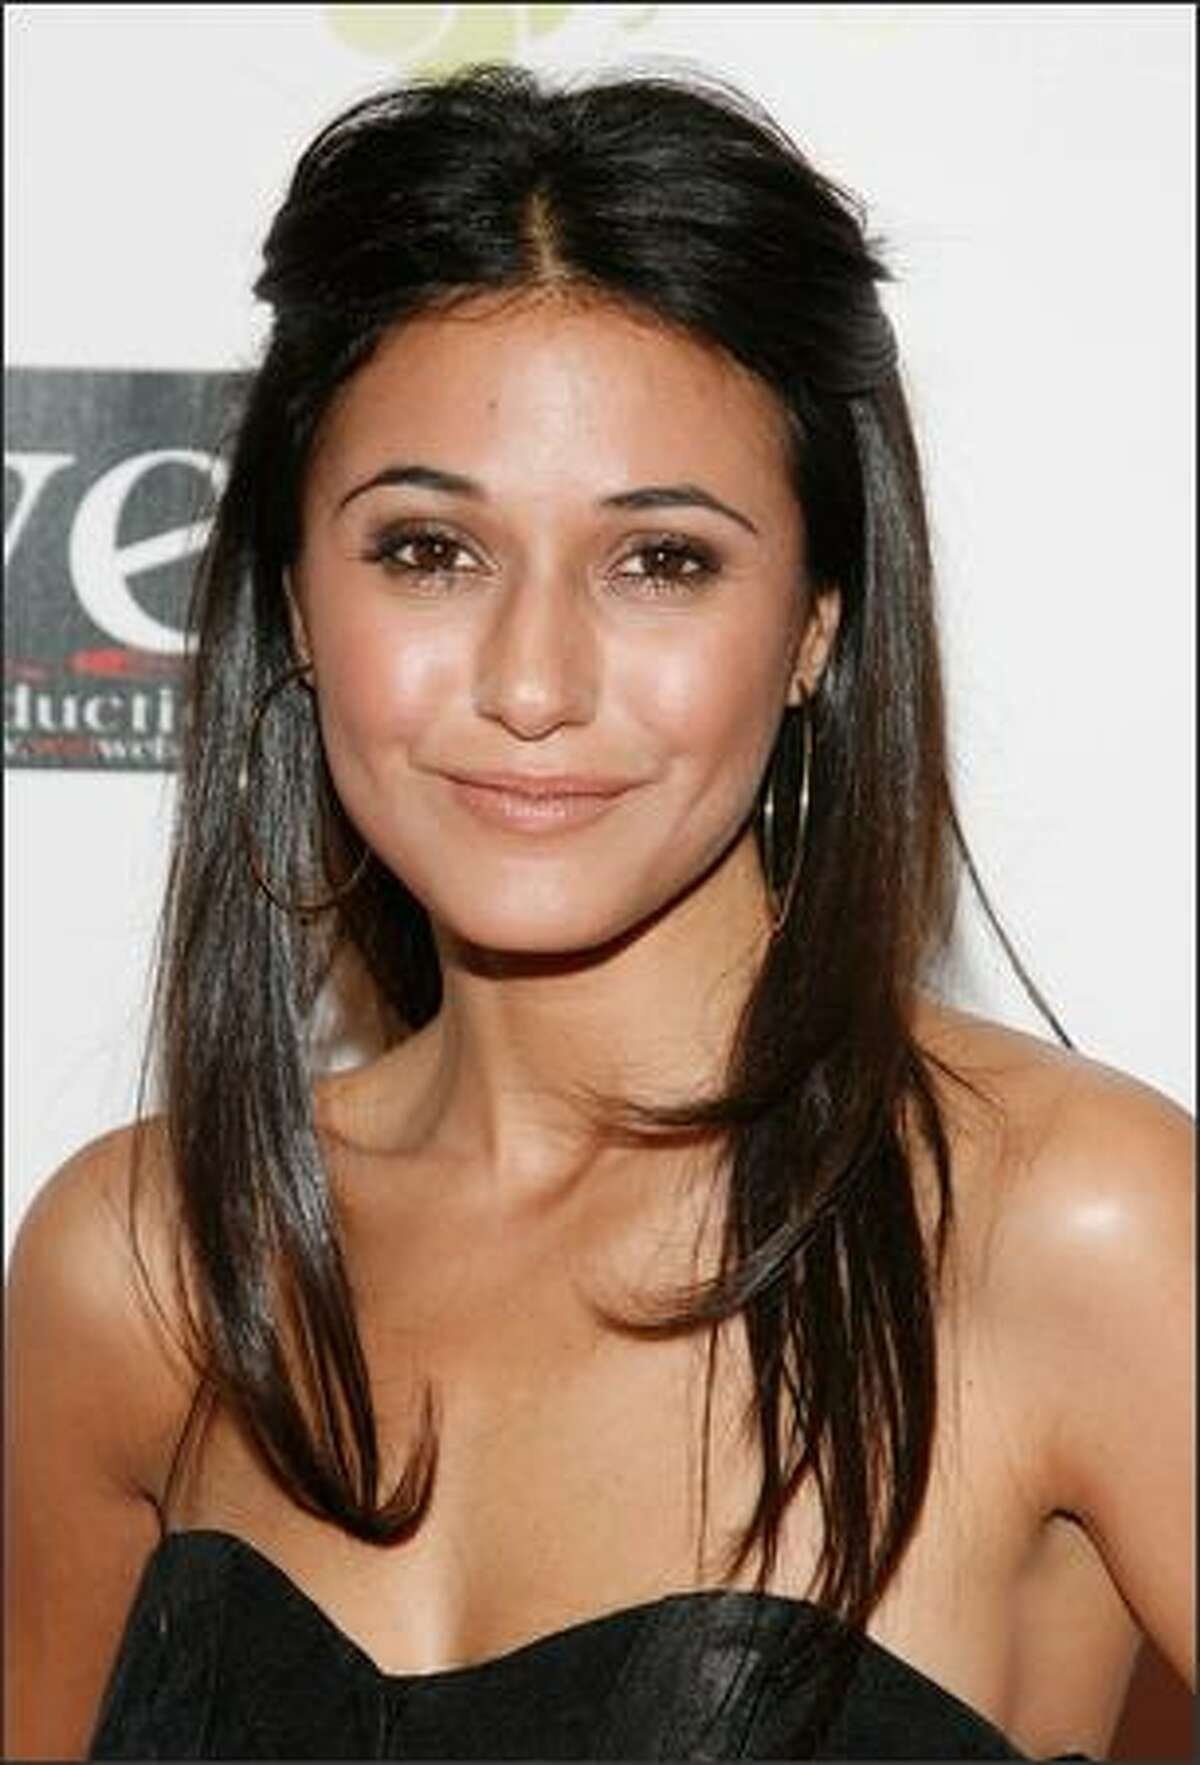 Actress Emmanuelle Chriqui attends the LOVE benefit to support WET's 10th season at the Angel Orensanz Foundation in New York City.